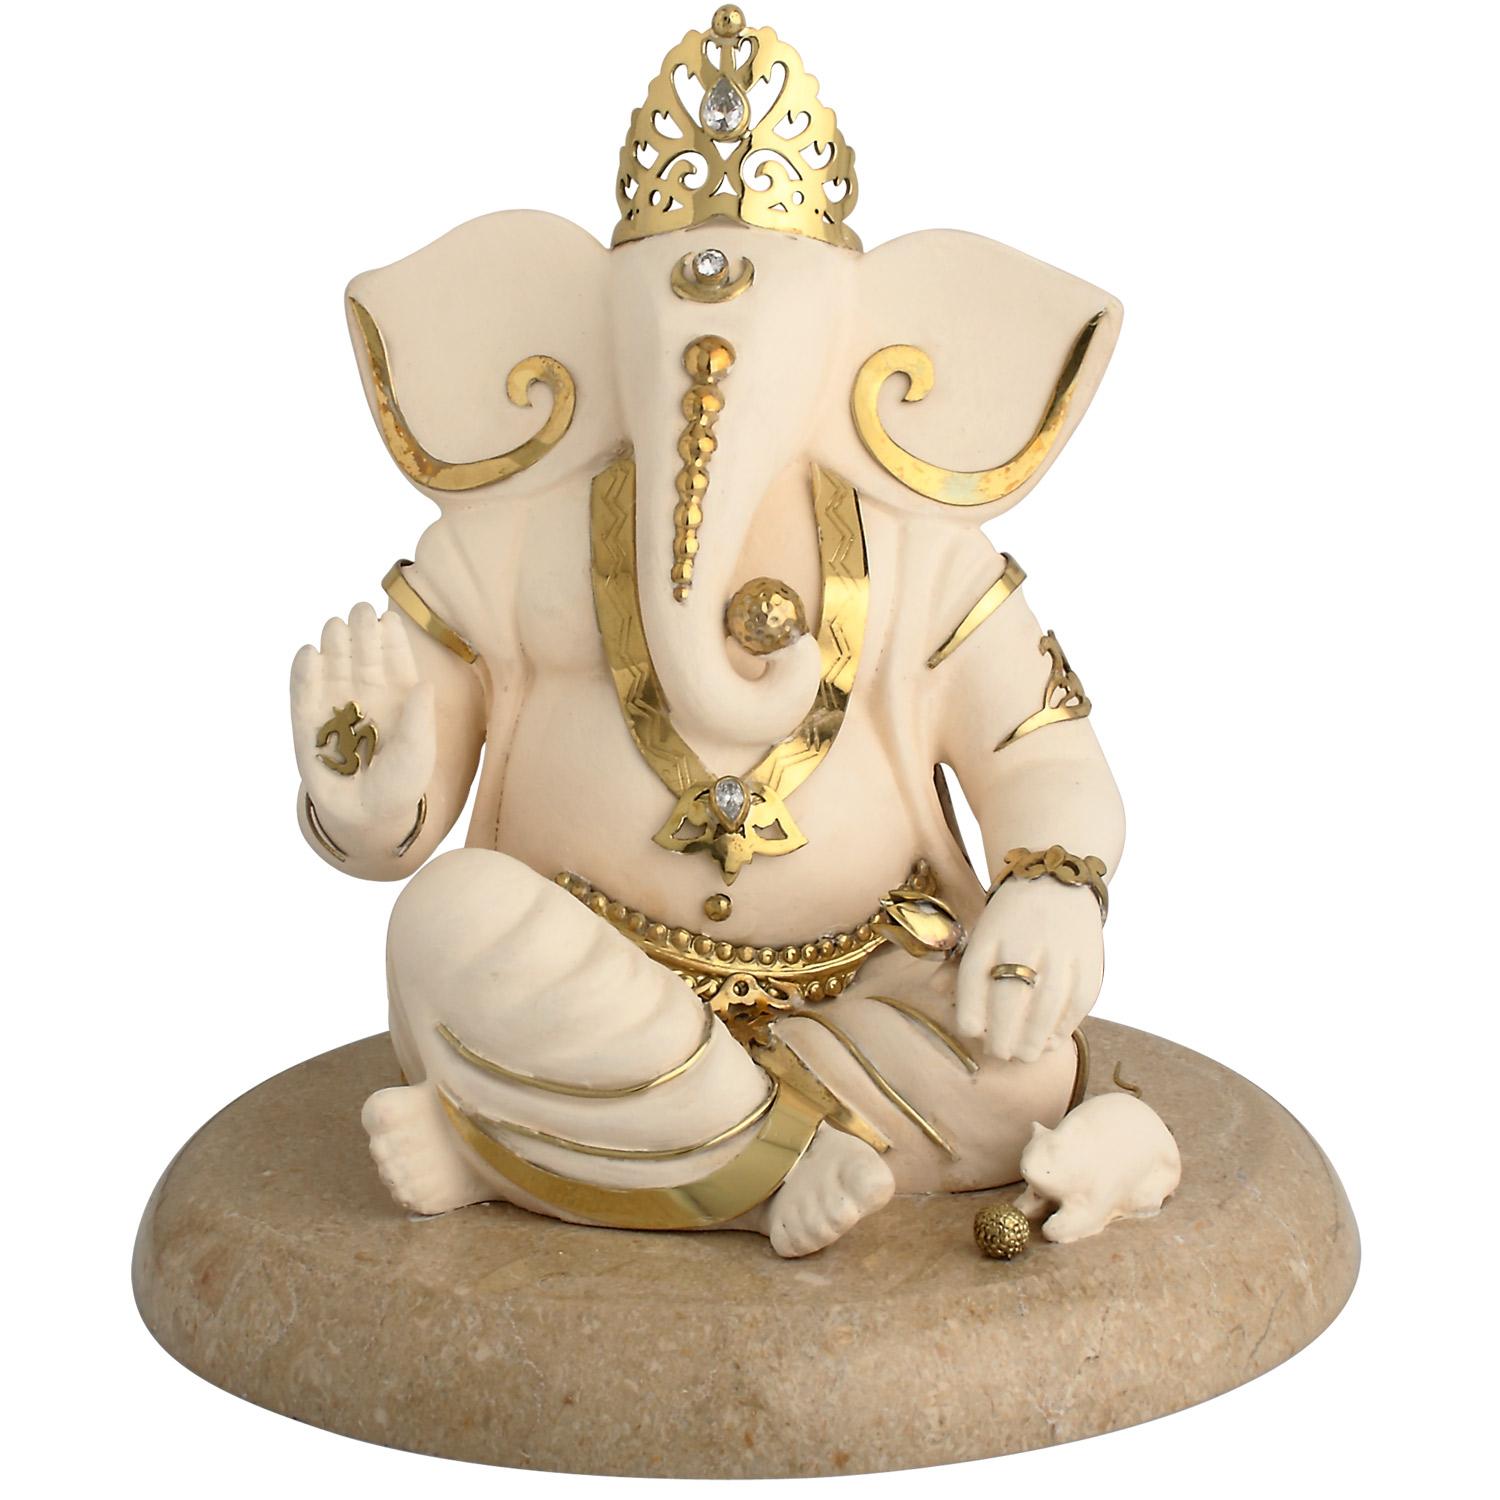 Ganesh Ashirwad Idol in Brass - Ganesh Idol PNG